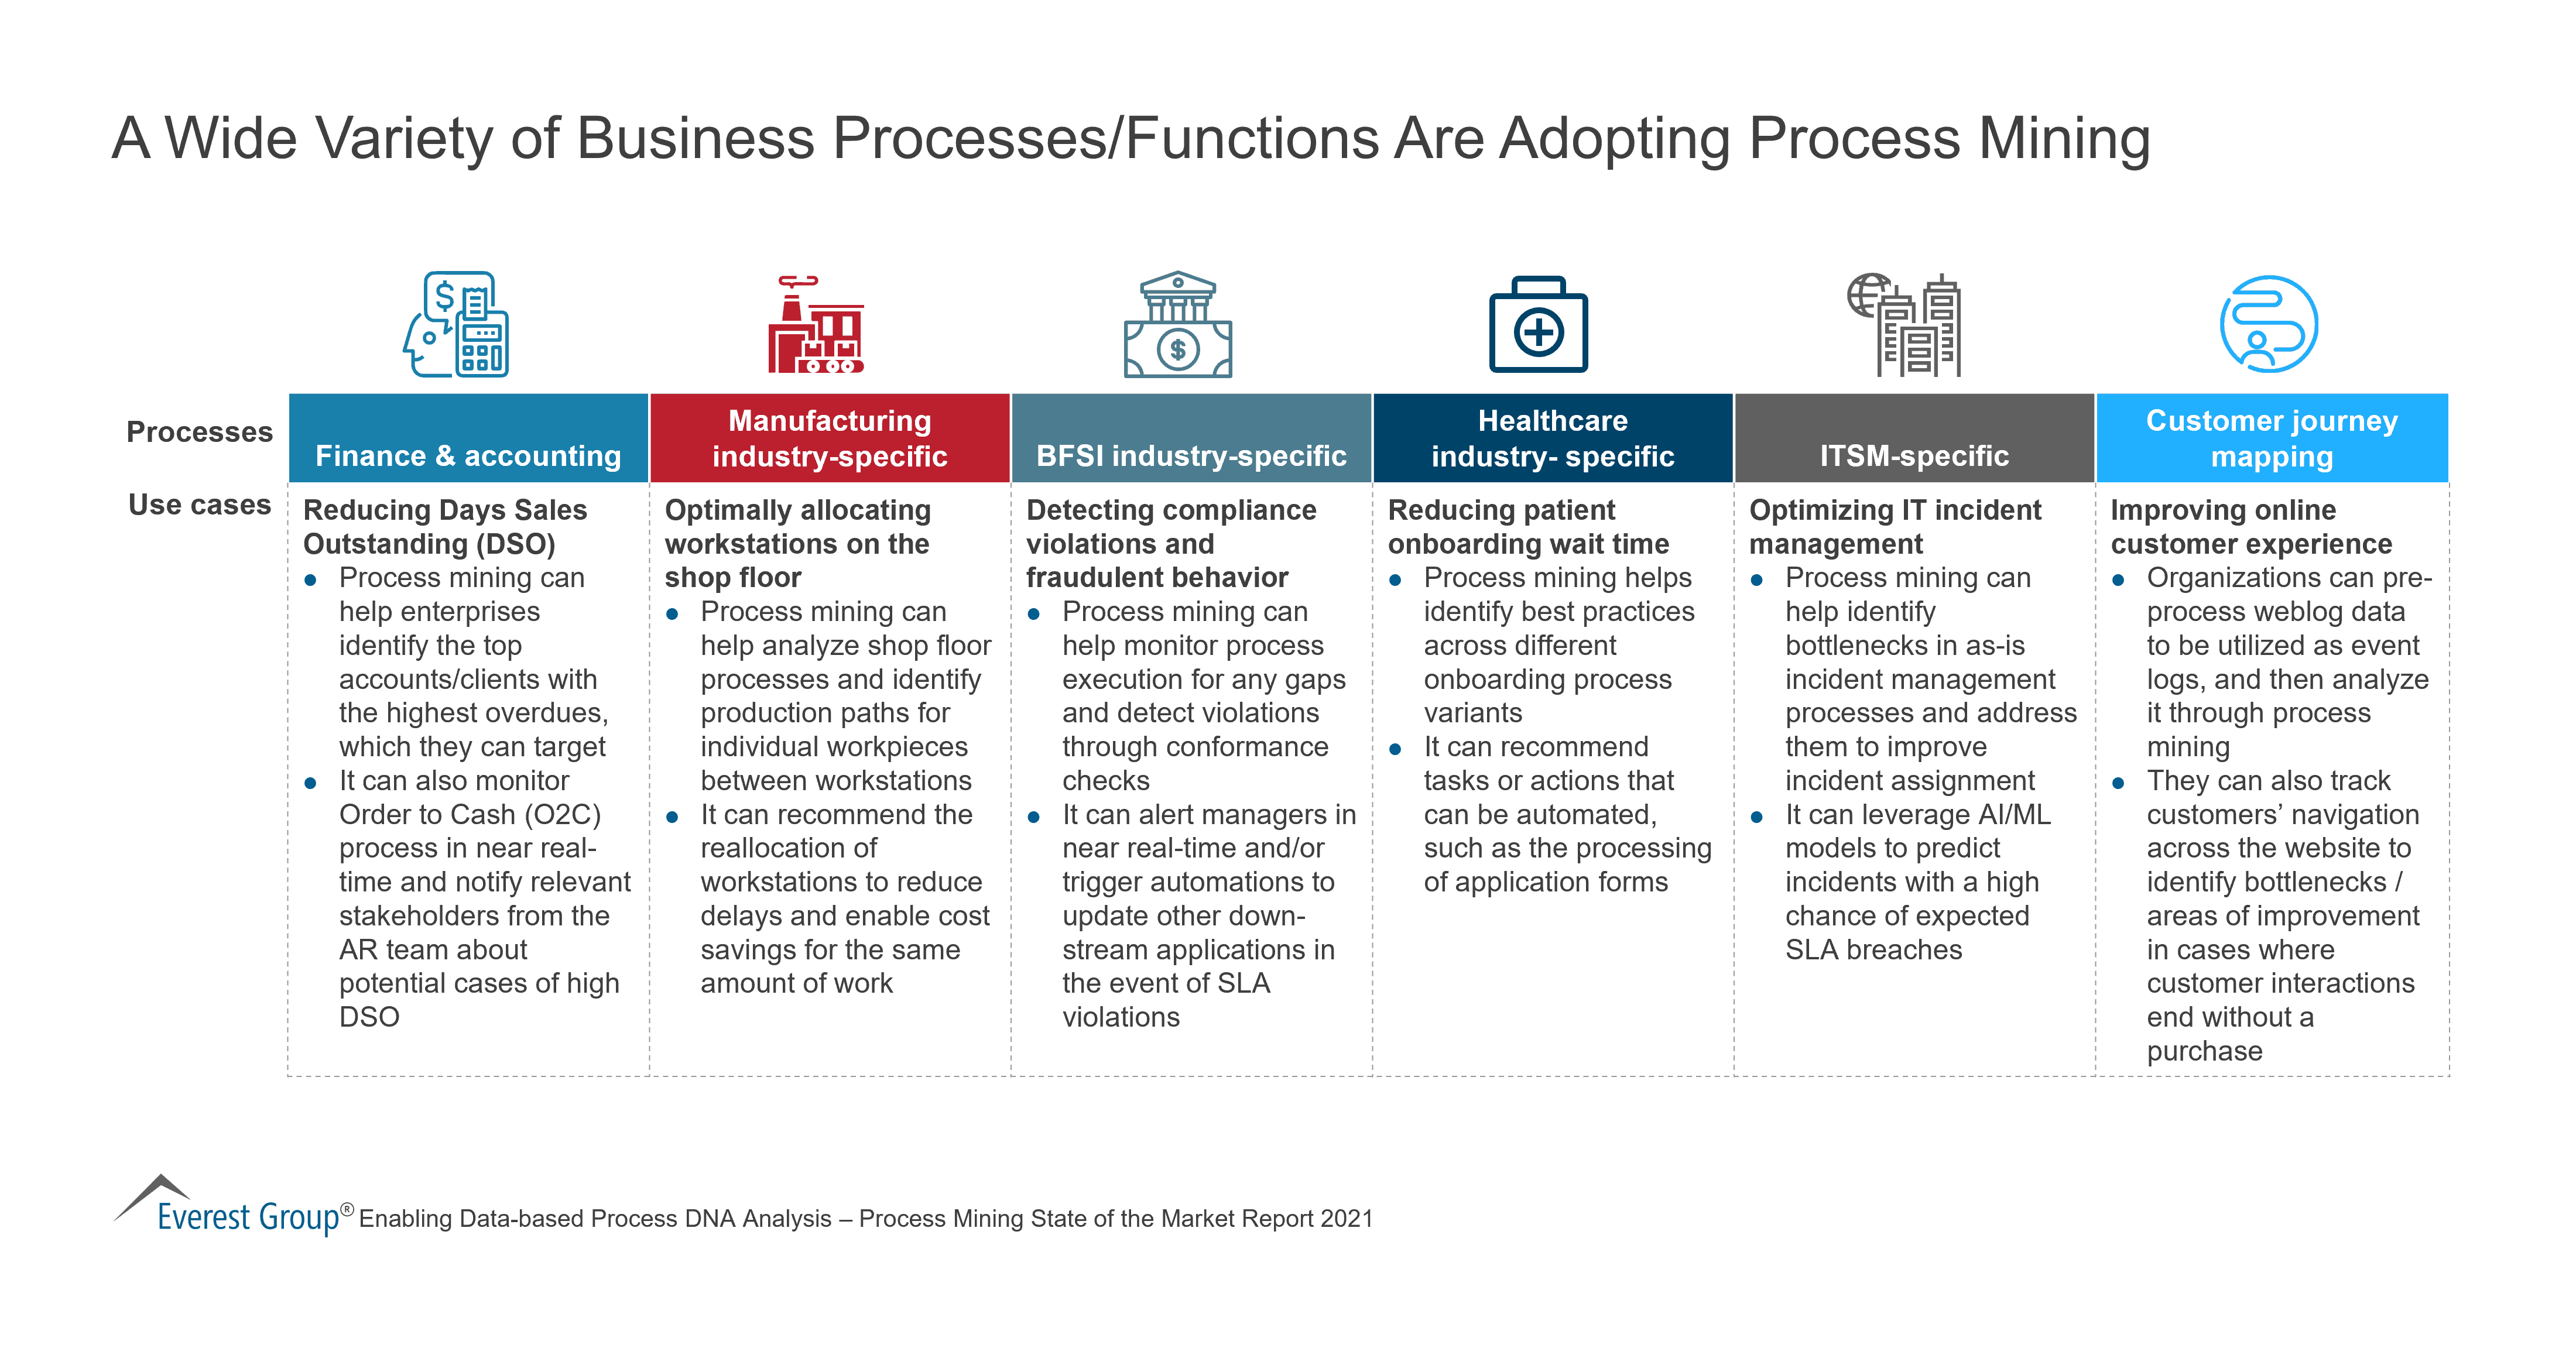 Process Mining State of the Market Report 2021 for PR